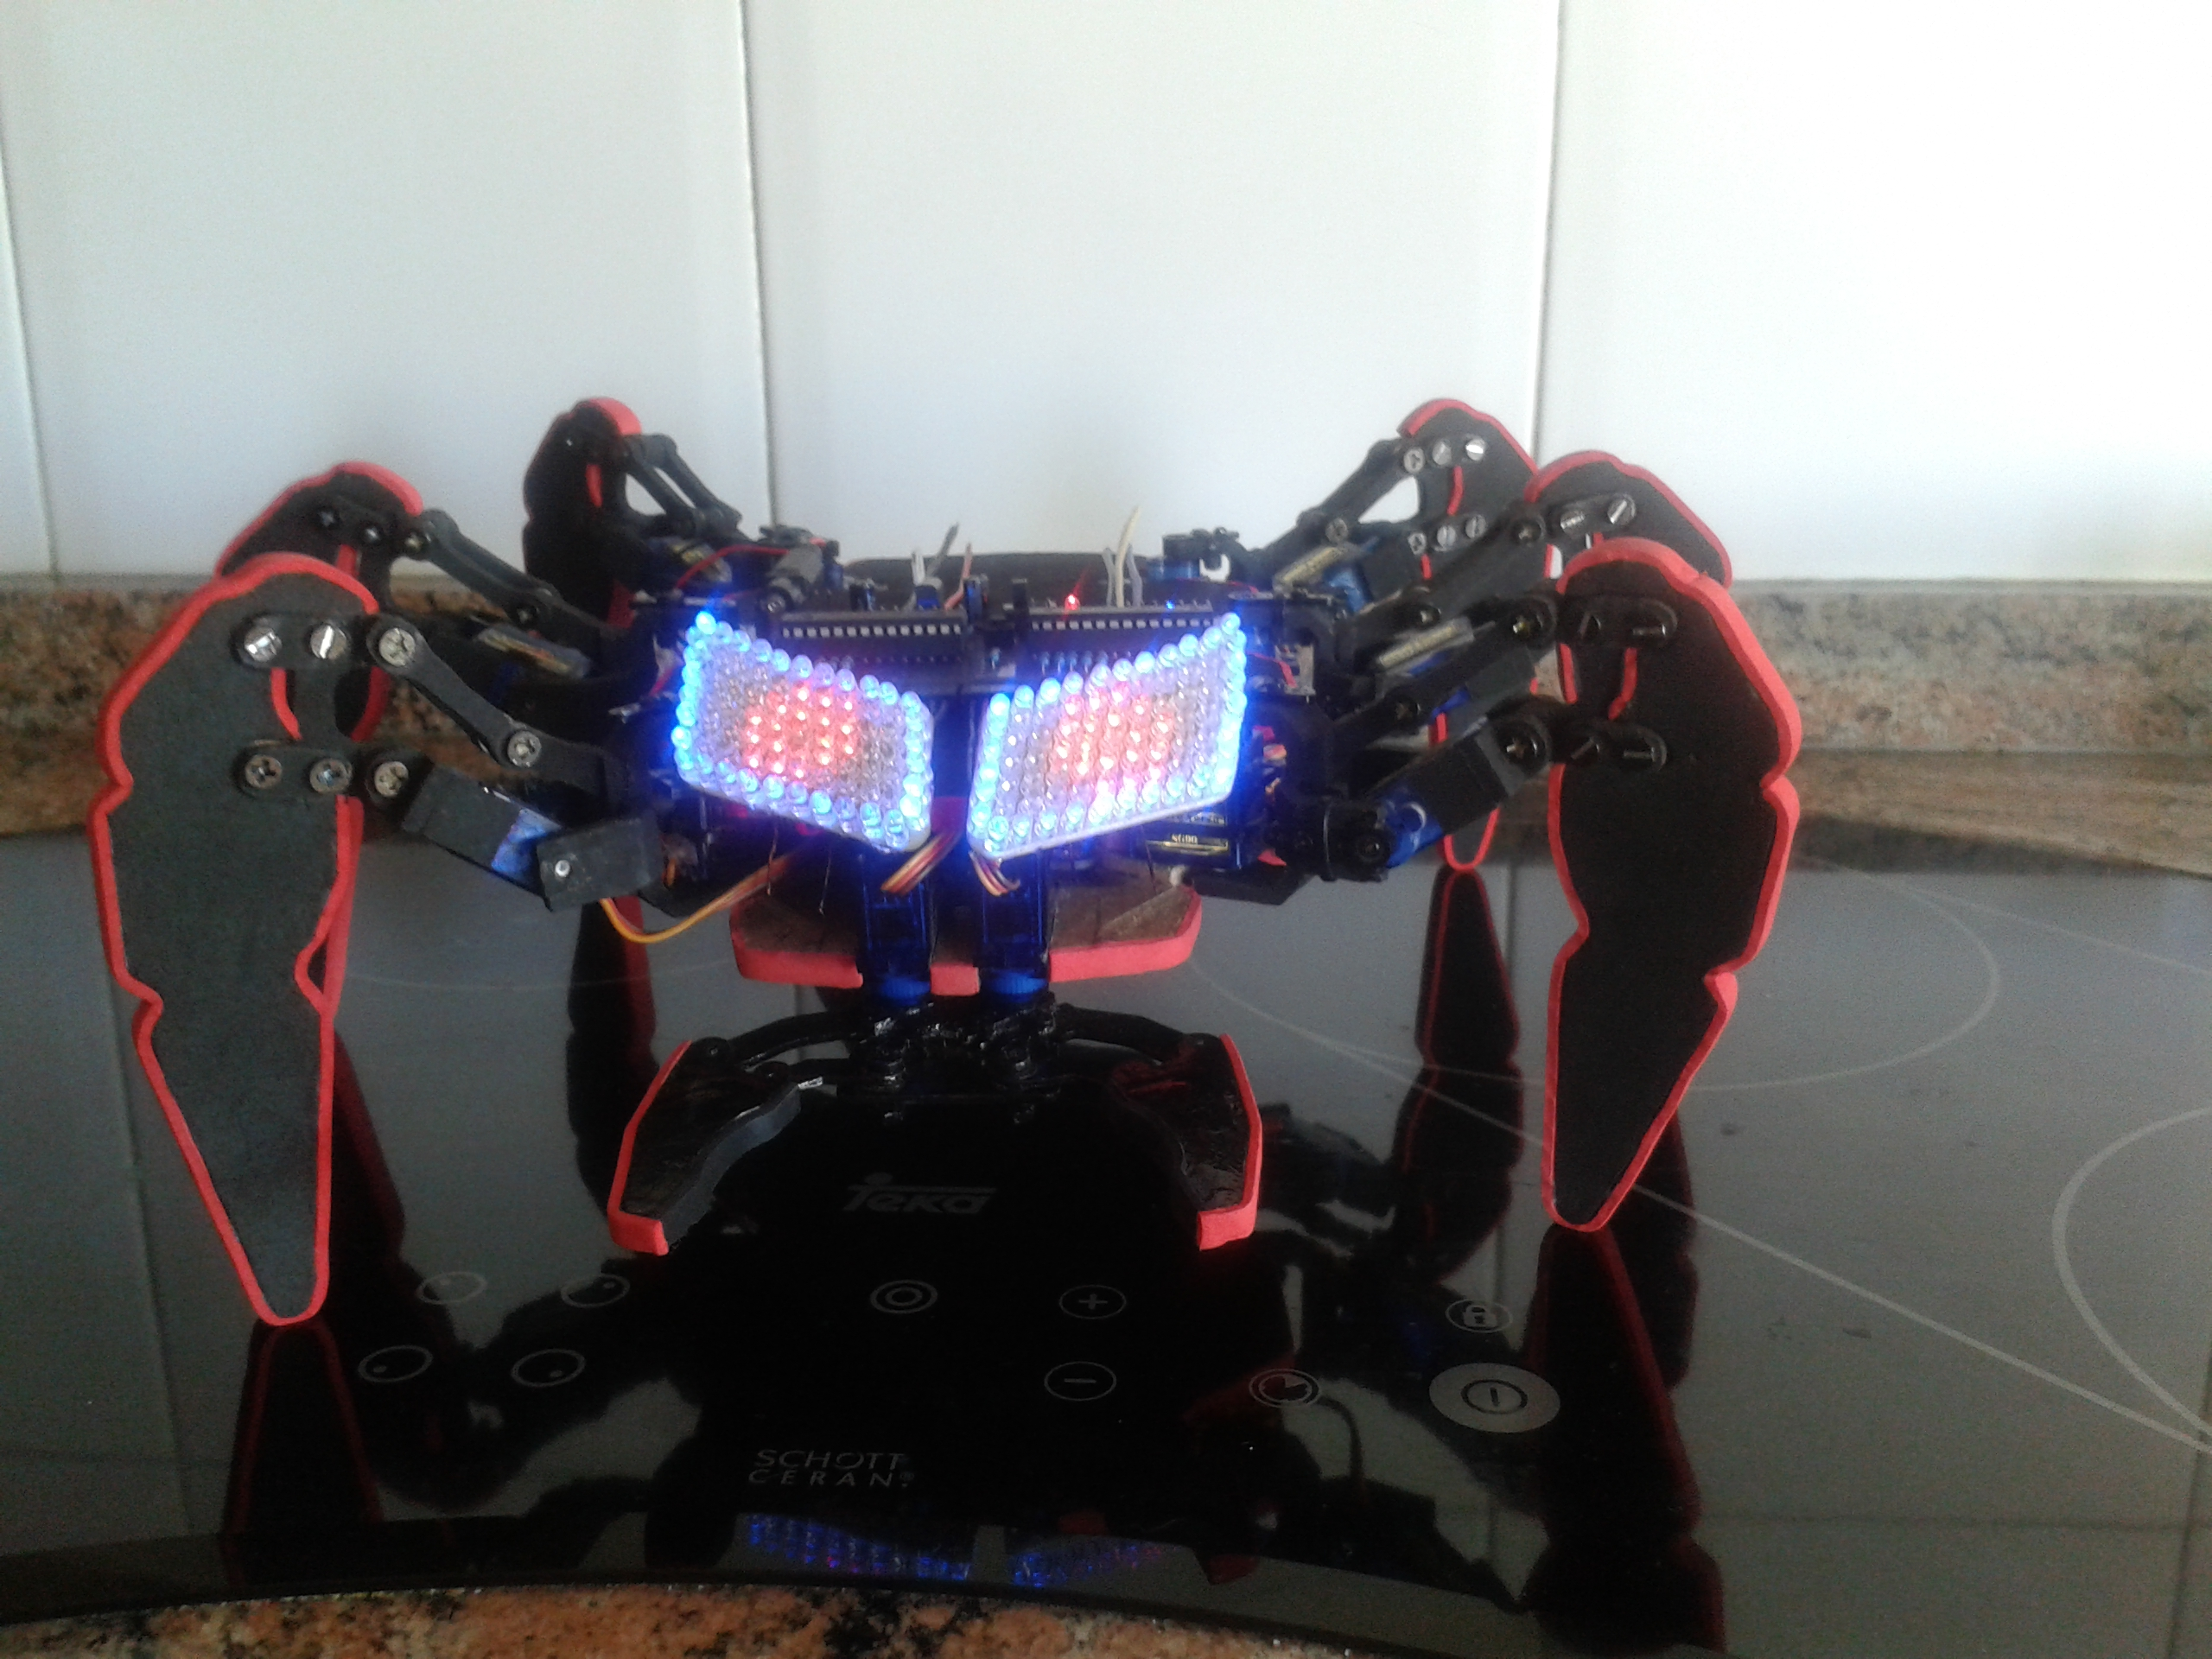 DIY handmade Hexapod with arduino (Hexdrake)